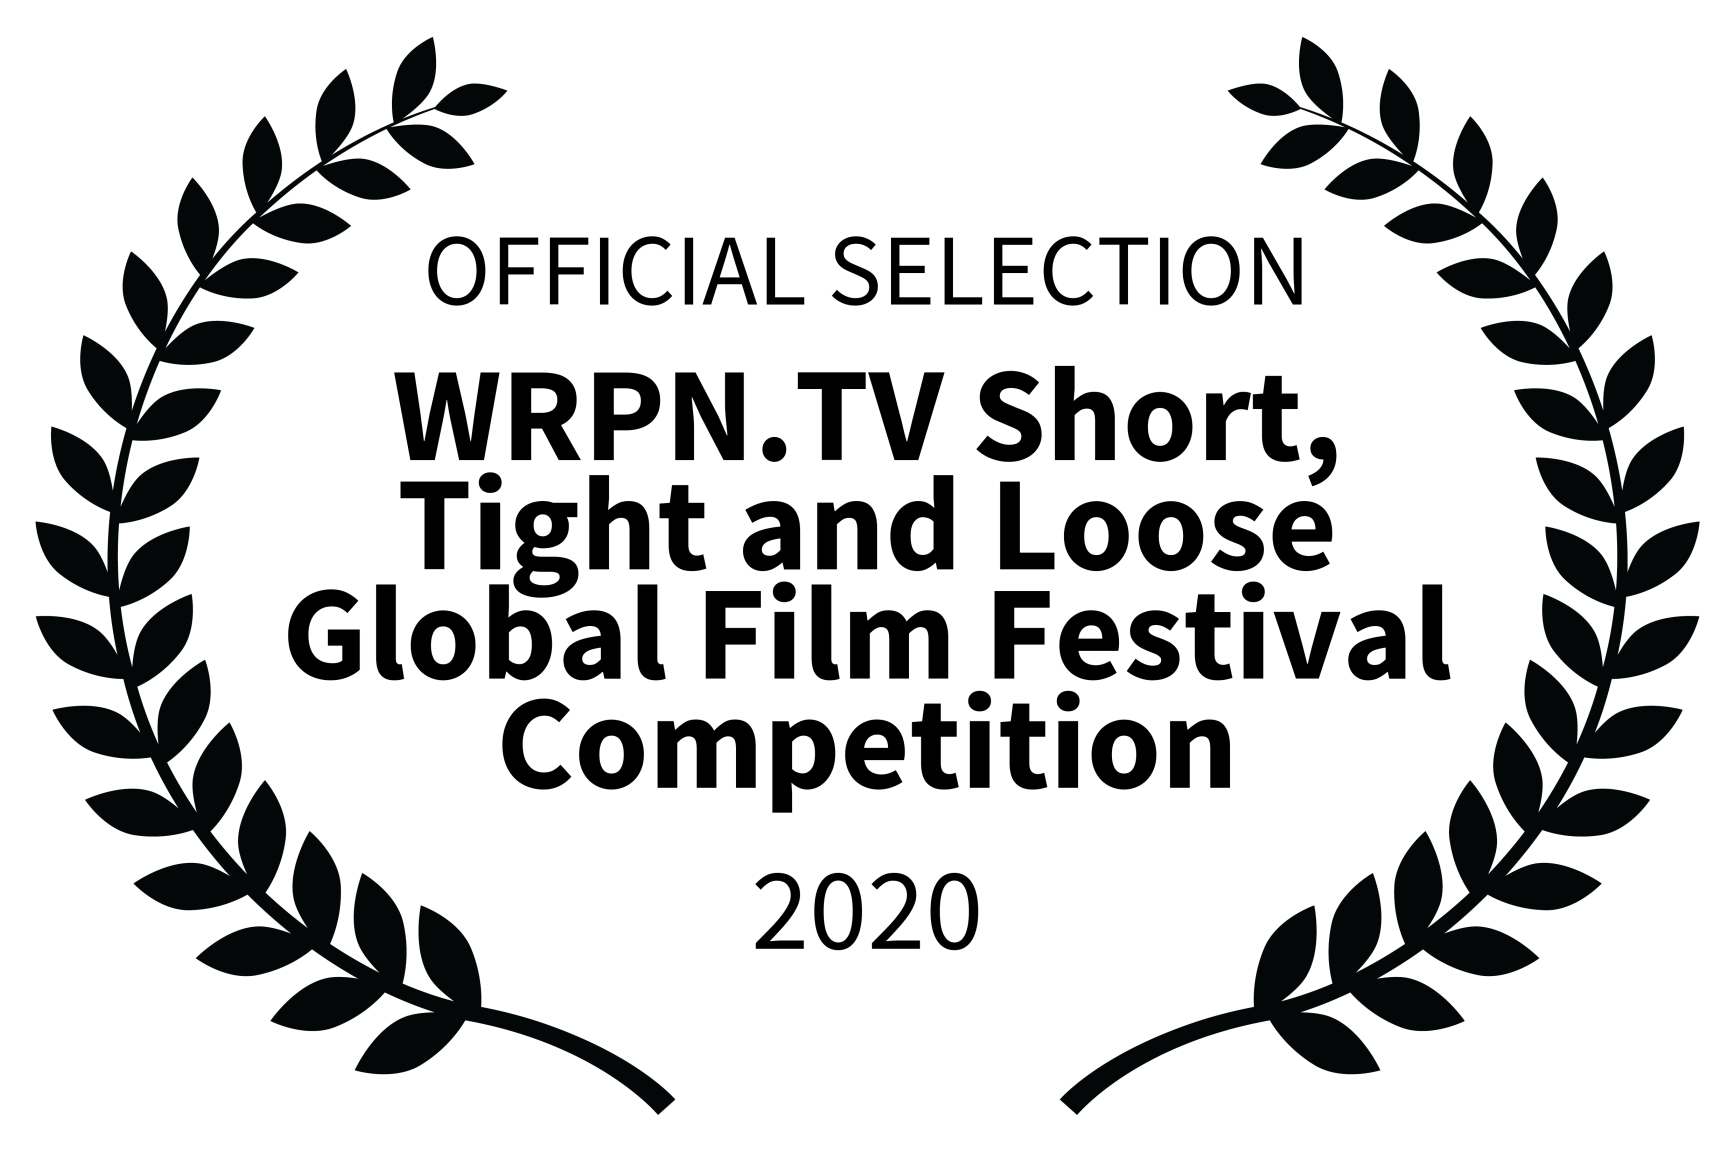 OFFICIAL SELECTION - WRPN.TV Short Tight and Loose Global Film Festival Competition - 2020